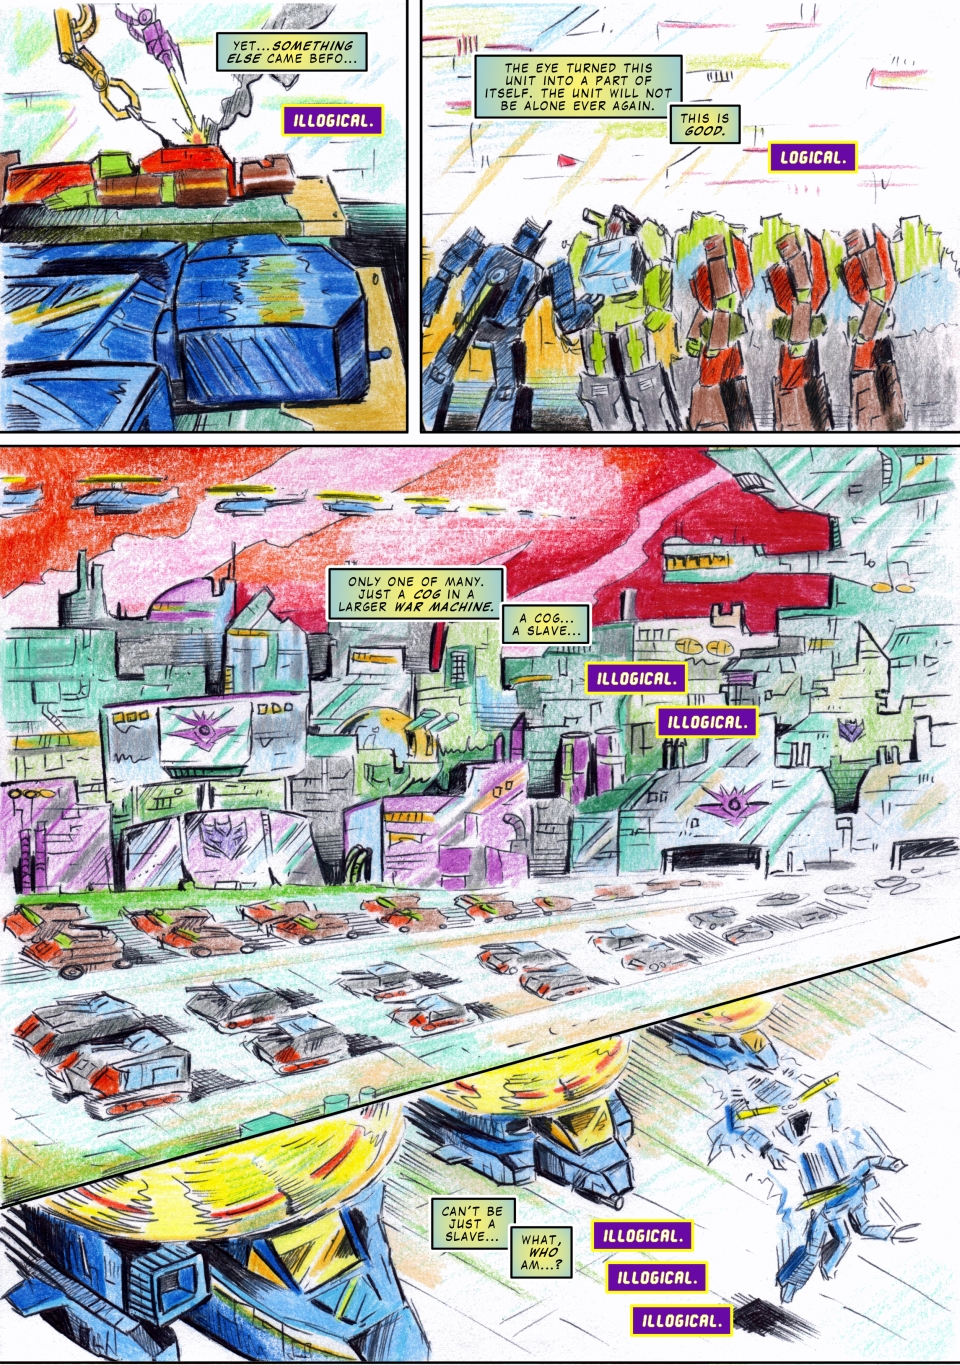 Uk G1 Untold Marvels Annual 2013 'The I' page 2